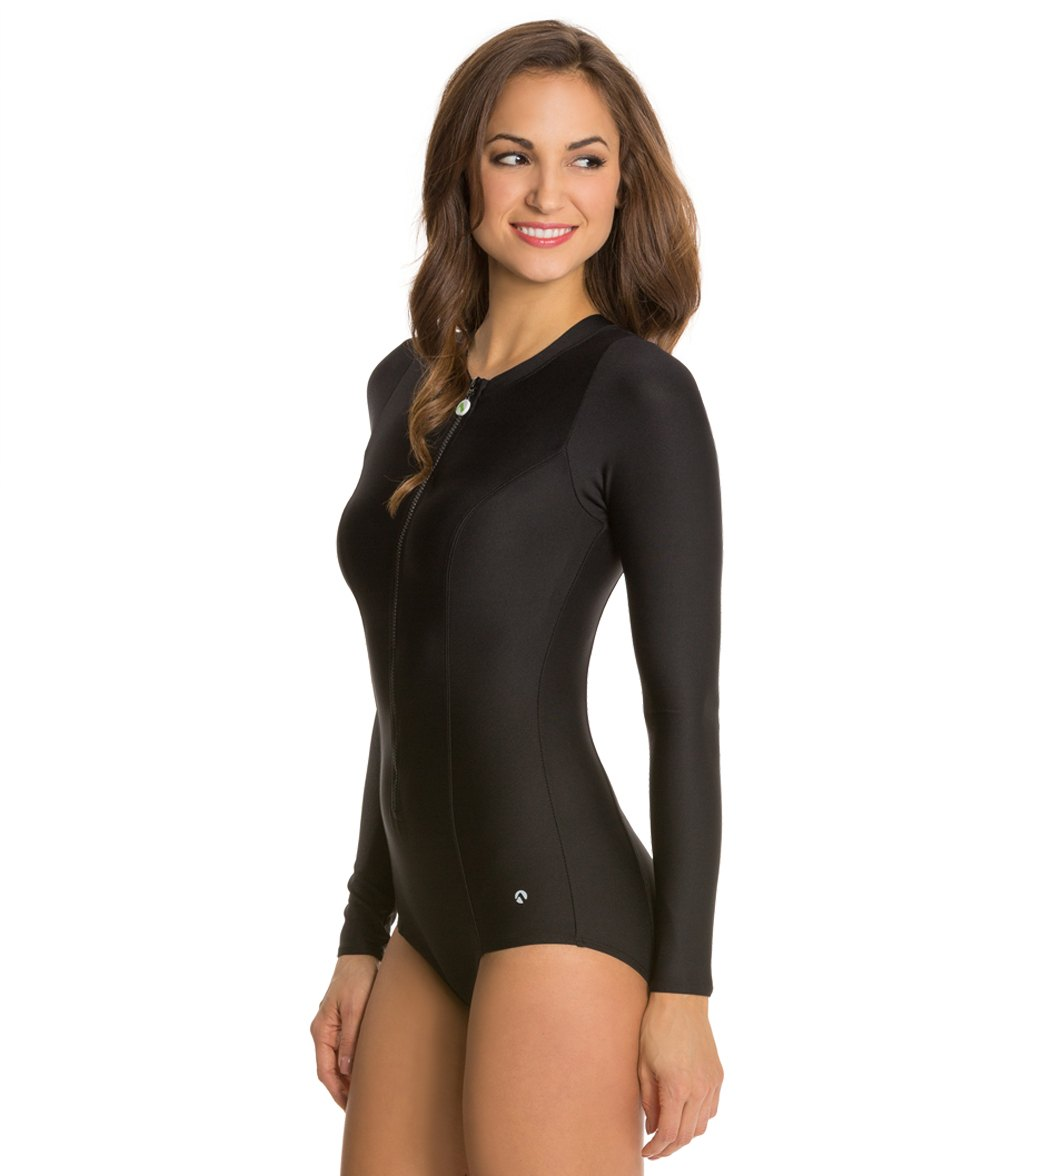 7669af4698 Next Good Karma Solid Malibu Zip Long Sleeve One Piece Swimsuit at ...